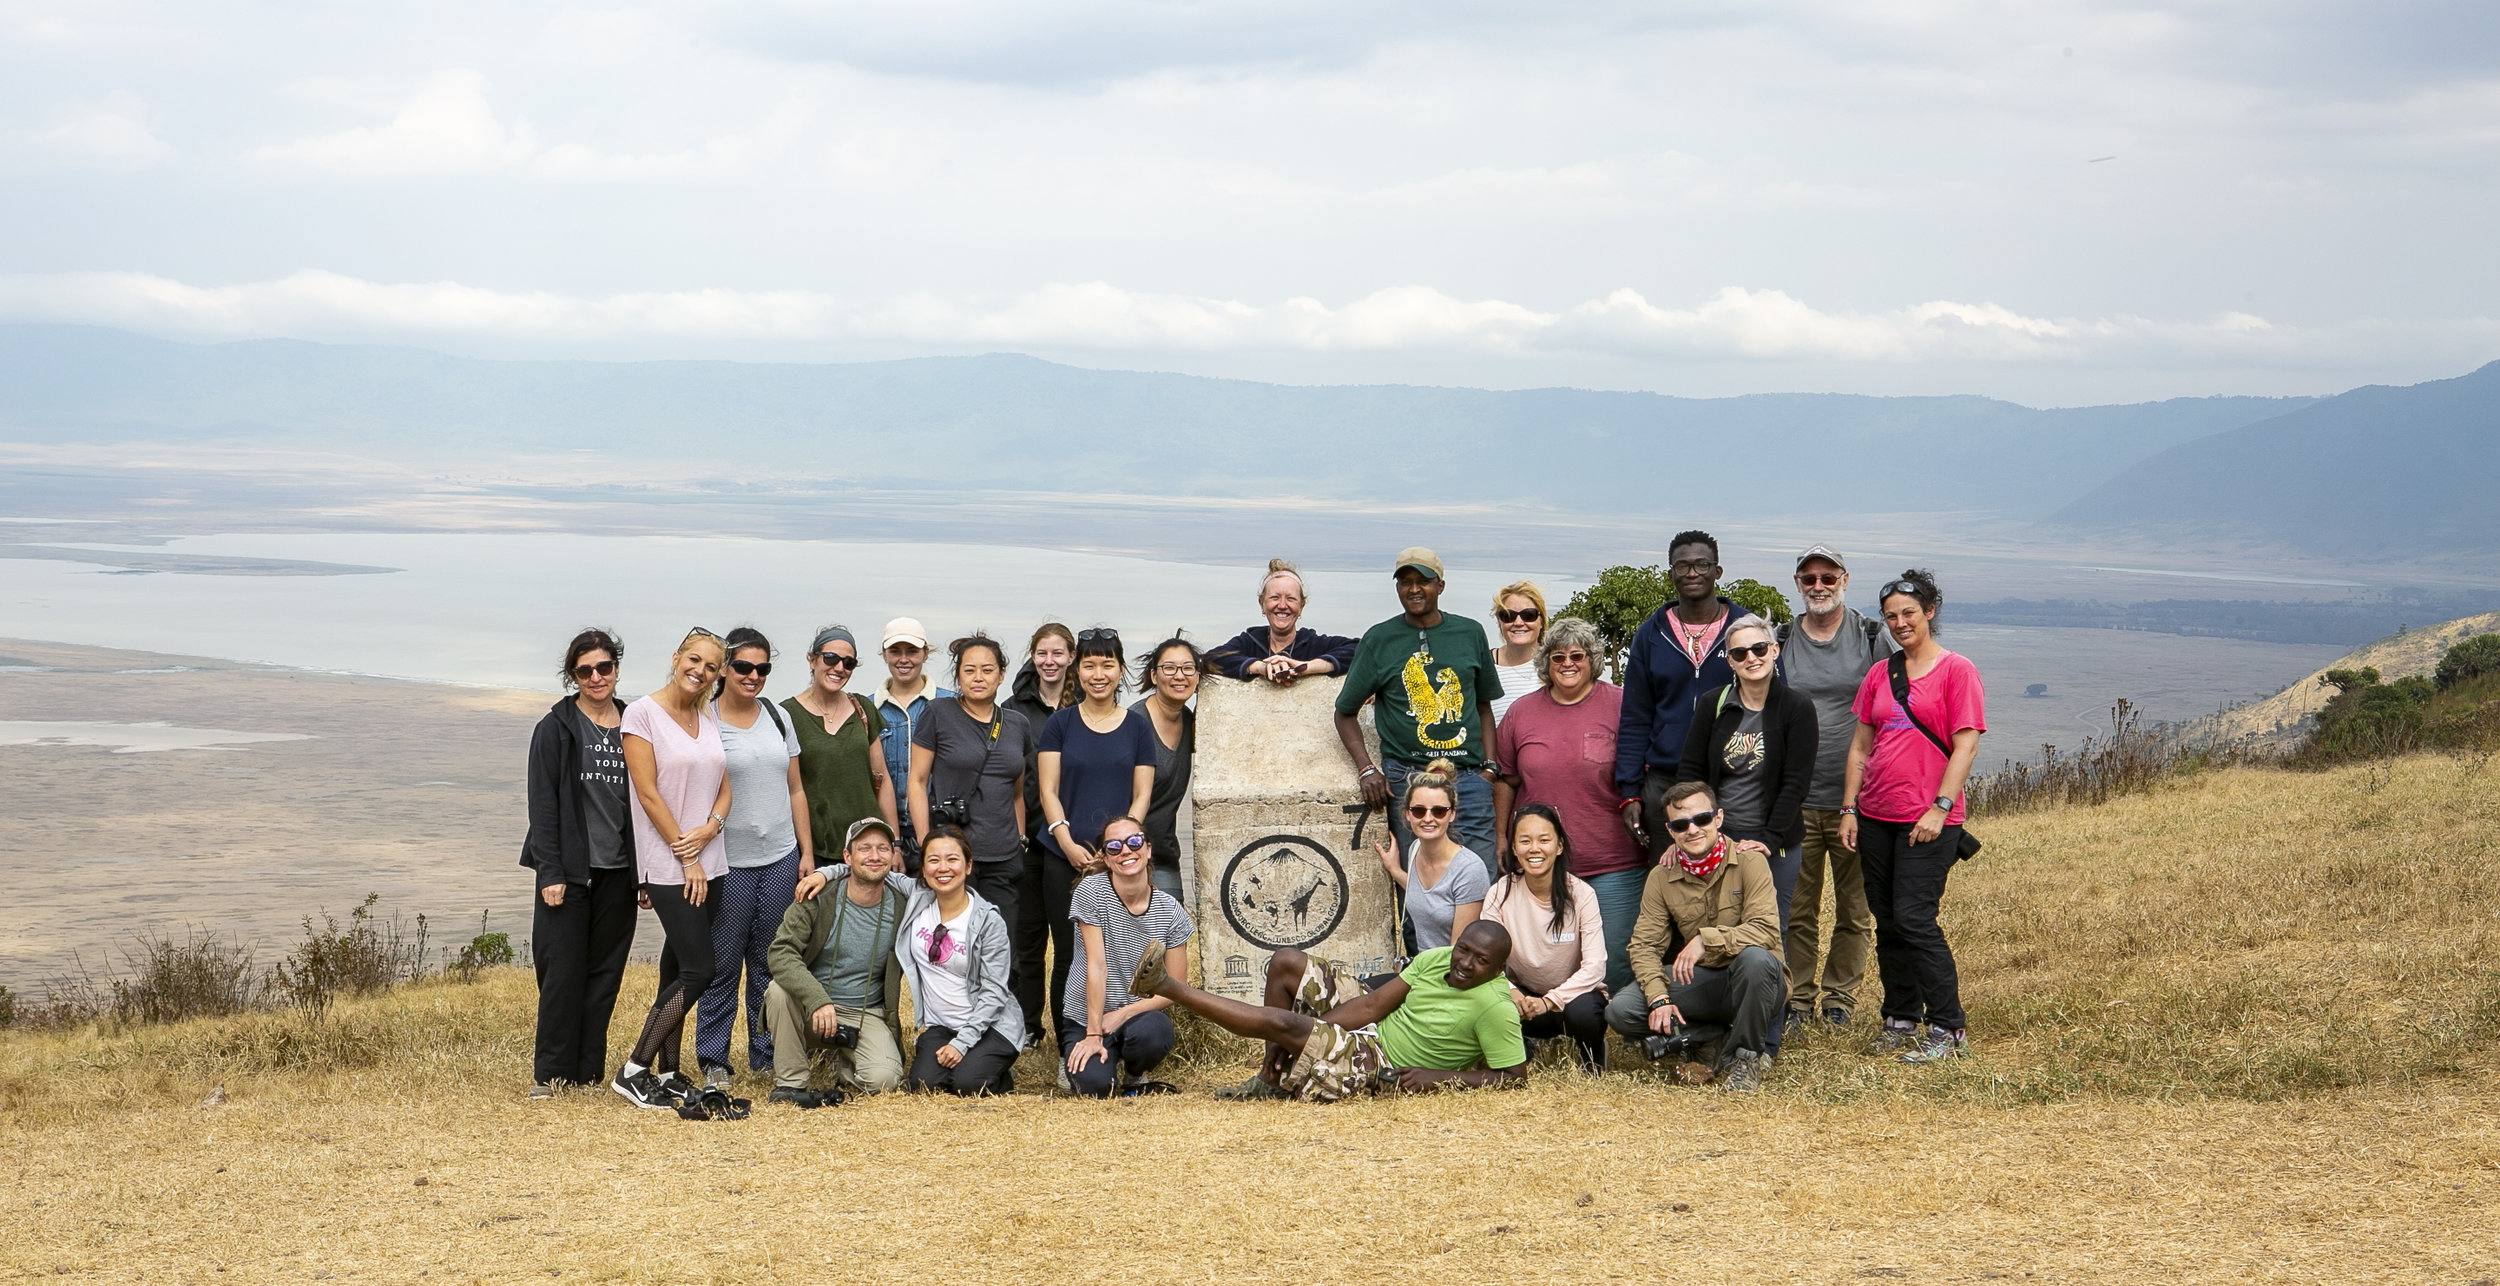 African Adventure - 30 July '18 - Serengeti National Park & Ngorongoro (Crater) Conservation Area - 006.JPG